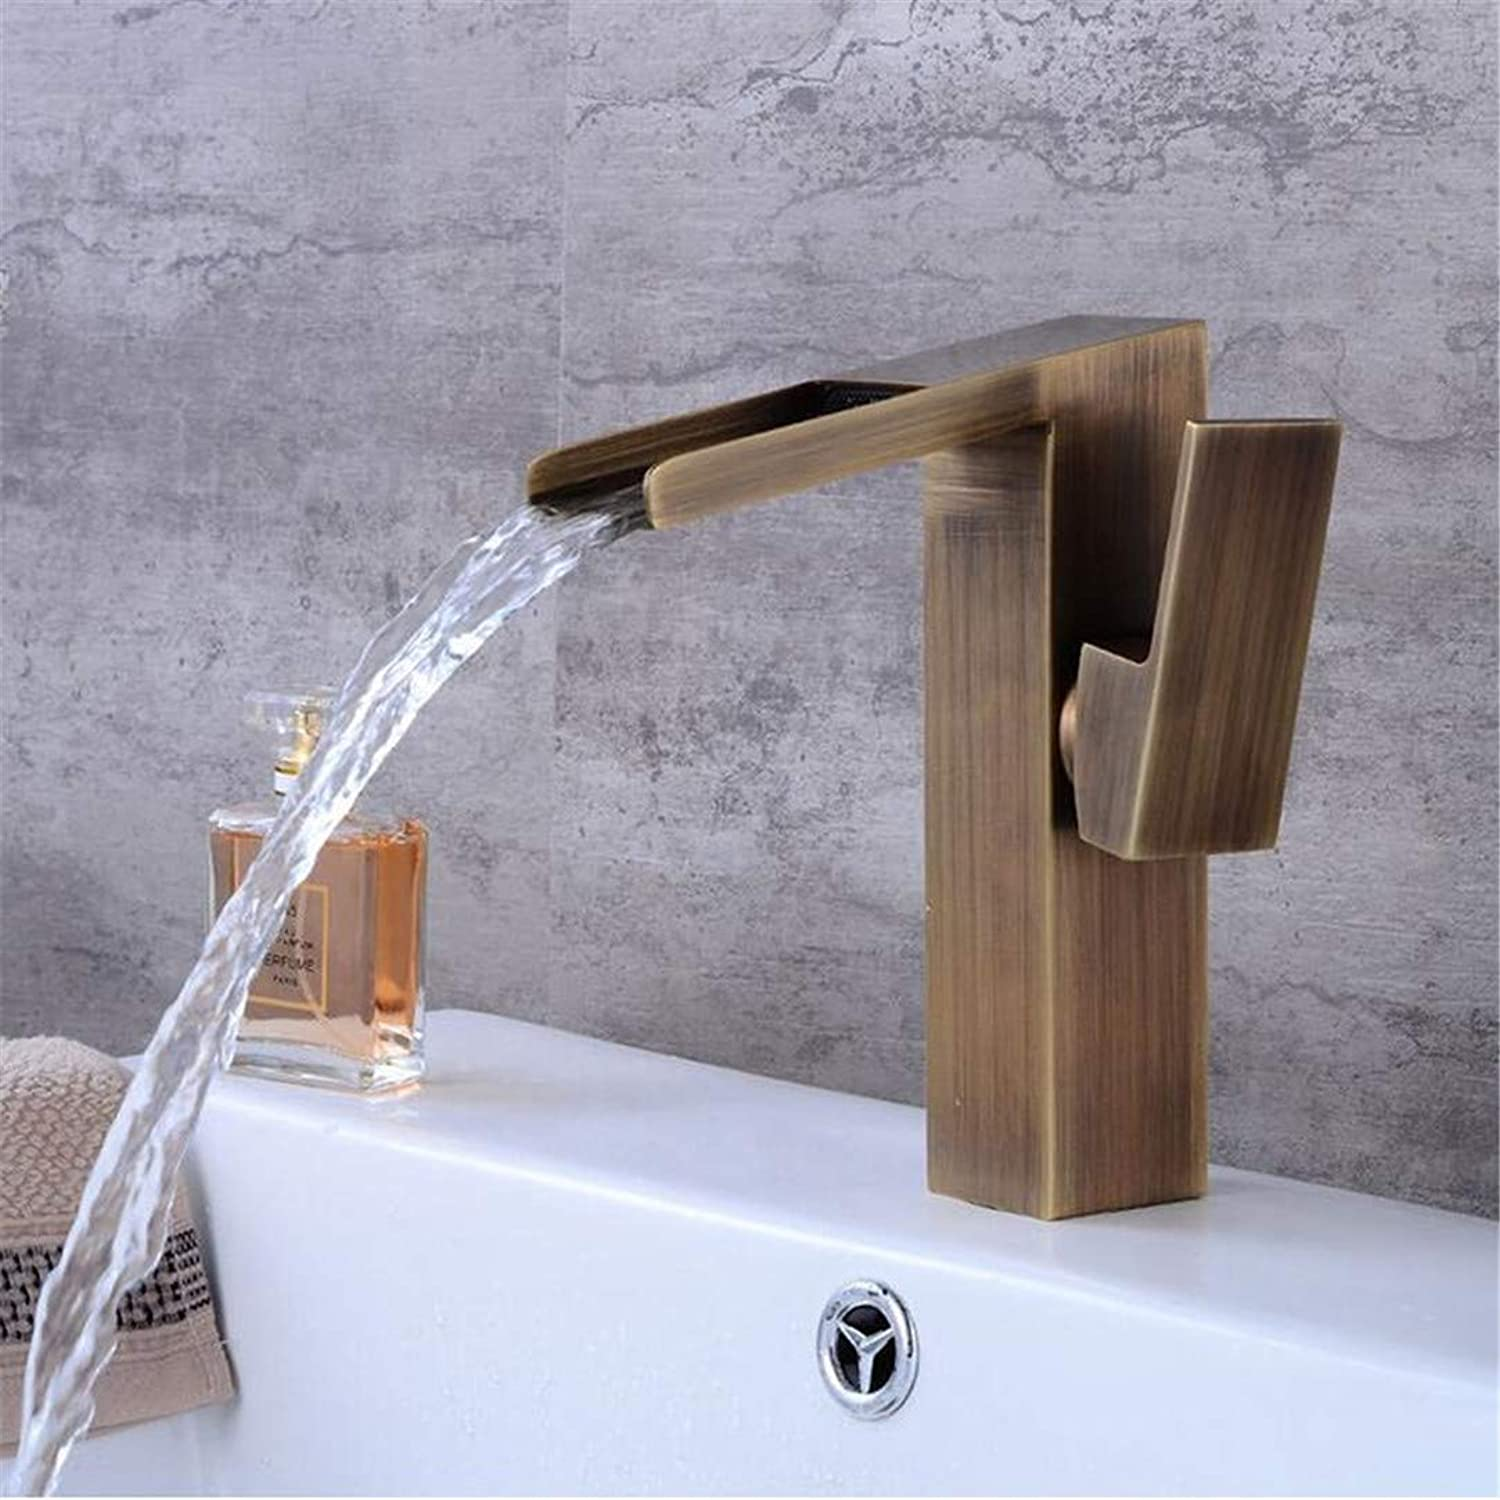 Basin Faucets Classic Antique Brass Higher Bathroom Sink Faucet Single Handle Hole Deck Mount Hot Cold Water Mixer Tap WC Taps